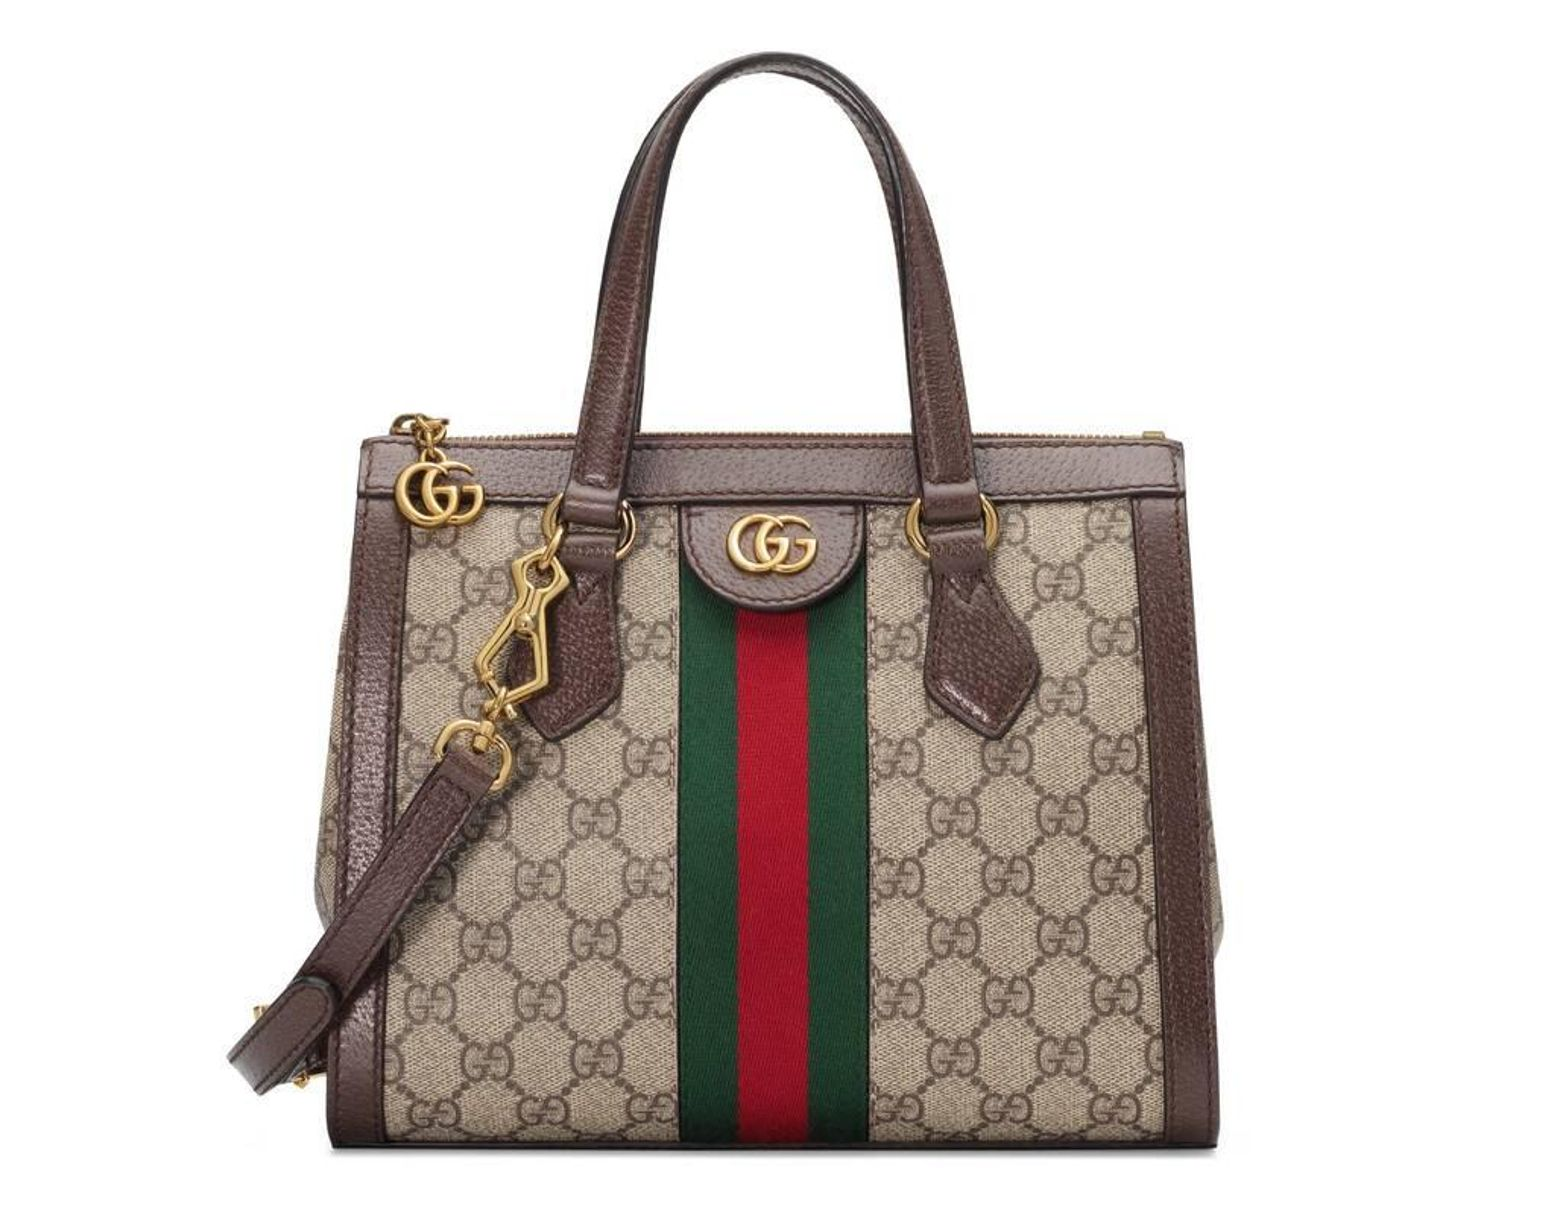 dd6aaf7c4 Gucci Ophidia Small GG Tote Bag in Green - Lyst